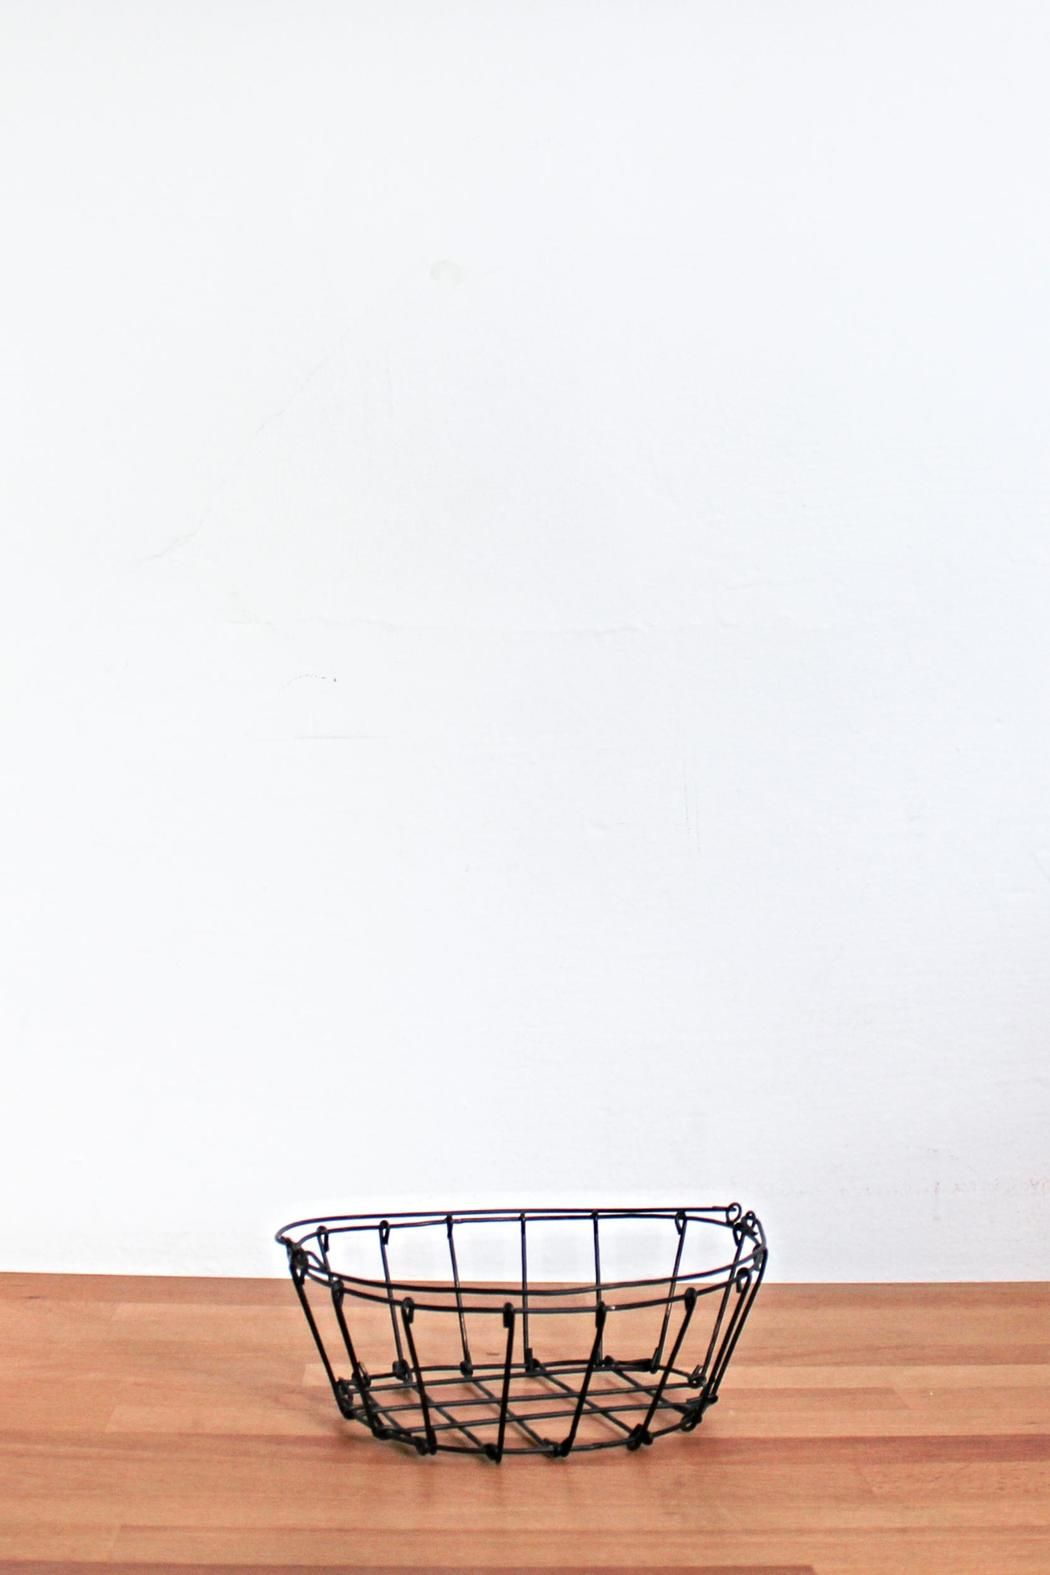 A dozen fresh eggs fit perfectly in this simple wire basket. Perfect for a country kitchen counter with apples or as a bread basket at a family dinner. Iron round table basket with handle.    Dimensions:D 21cm x H 7cm   Oval Wire Basket by Fog Linen Work. Home & Gifts - Home Decor Canada